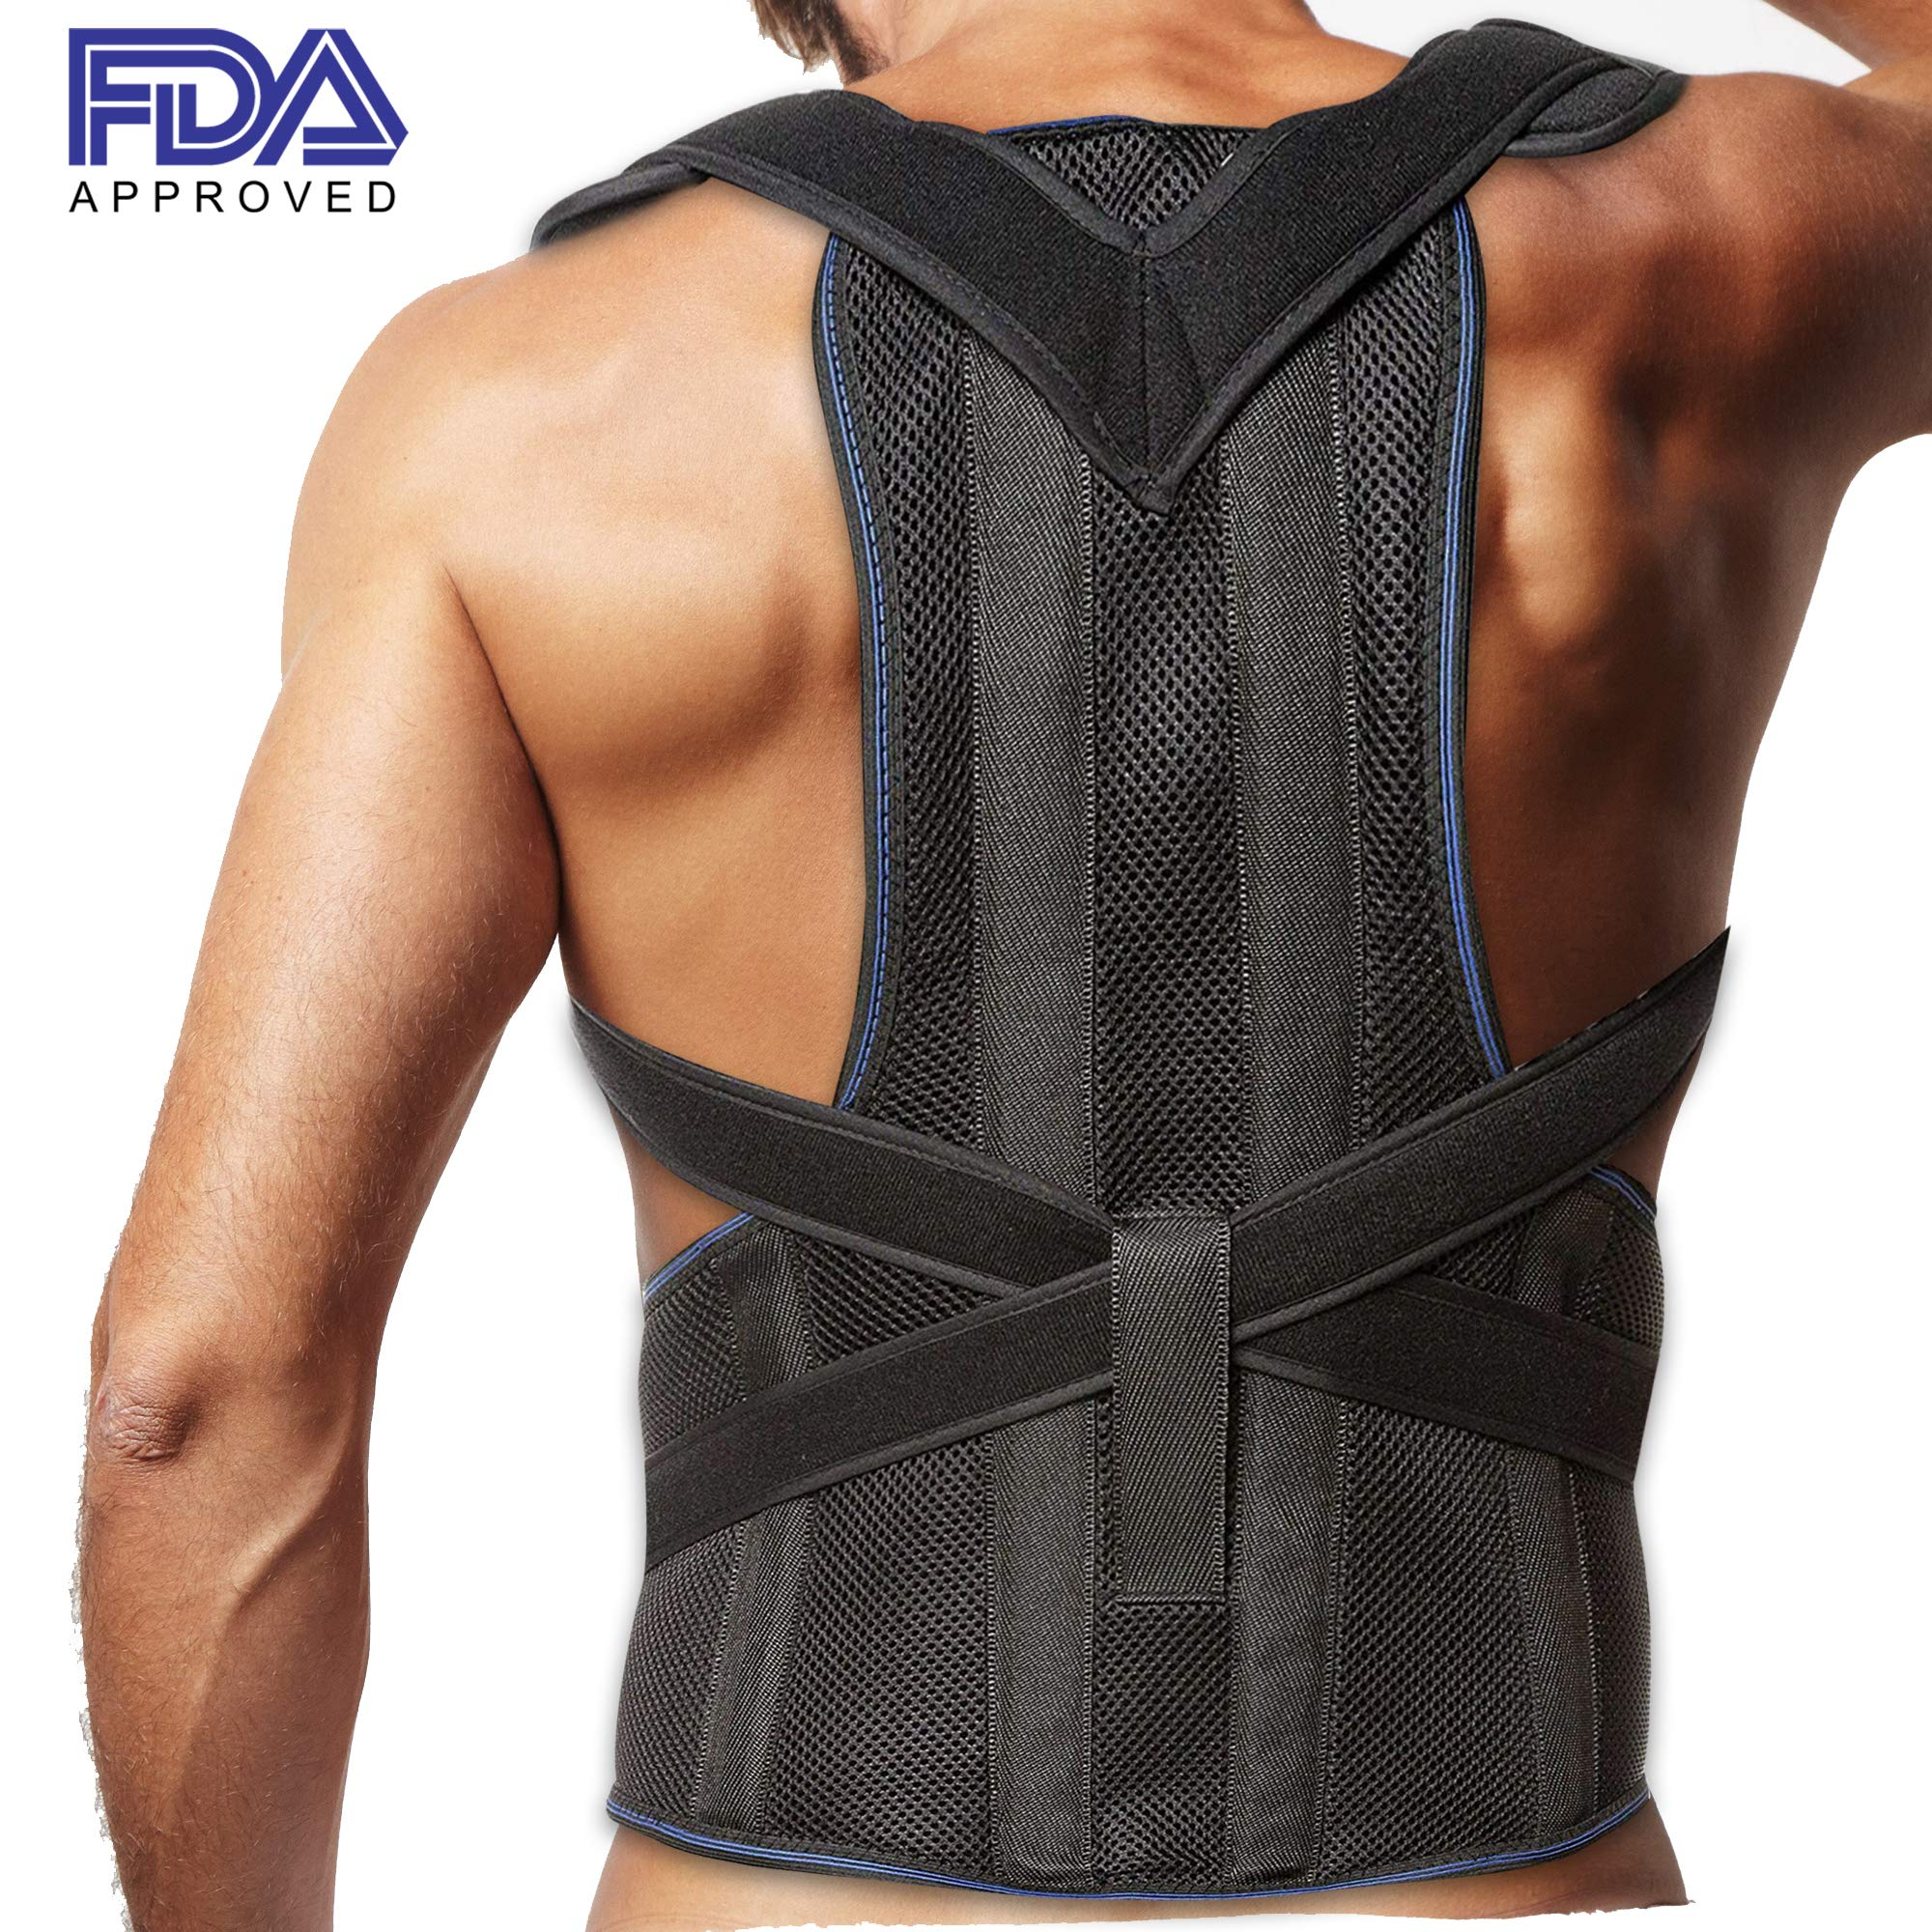 29d67450f2 Amazon.com  Posture Corrector Clavicle and Lower Back Support for ...